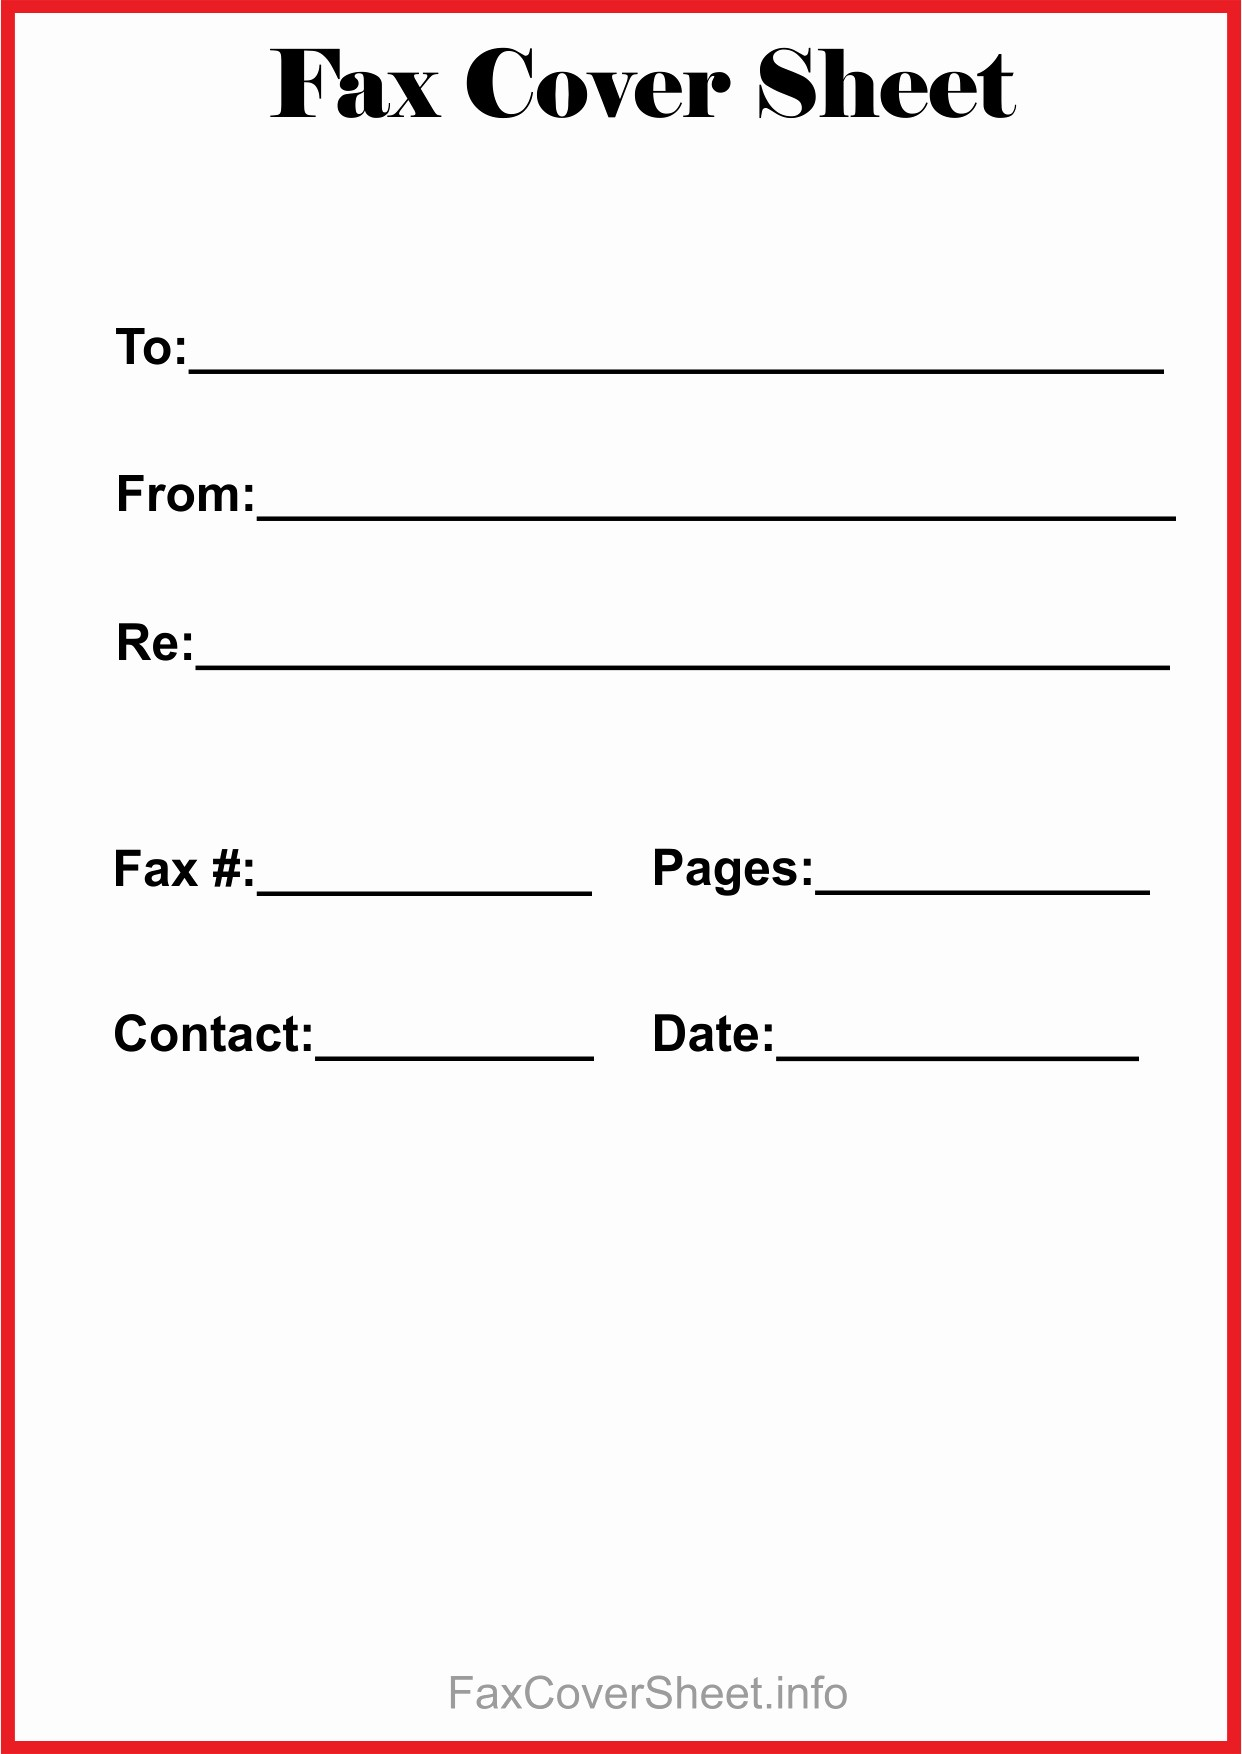 Free Fax Cover Letter Template Inspirational Free Fax Cover Sheet Template Download